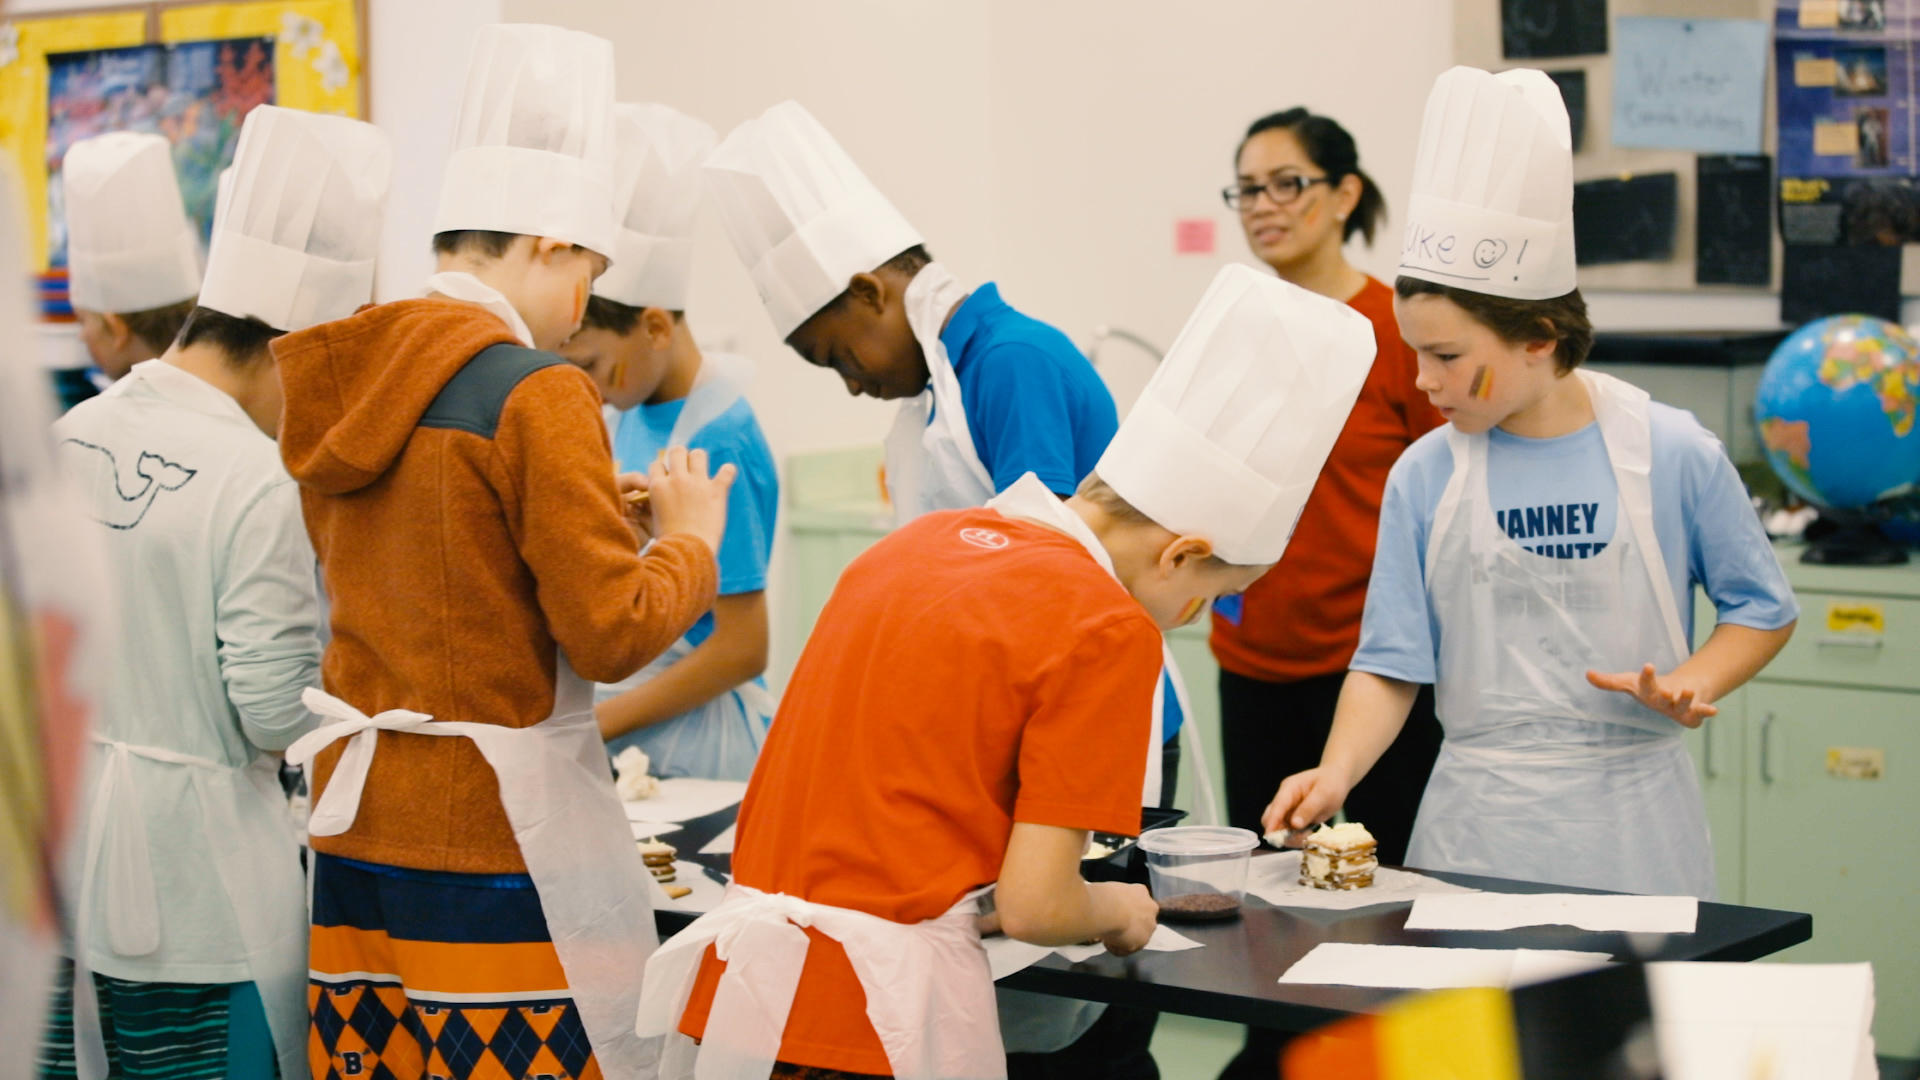 Group of children in a classroom wearing chef hats and aprons